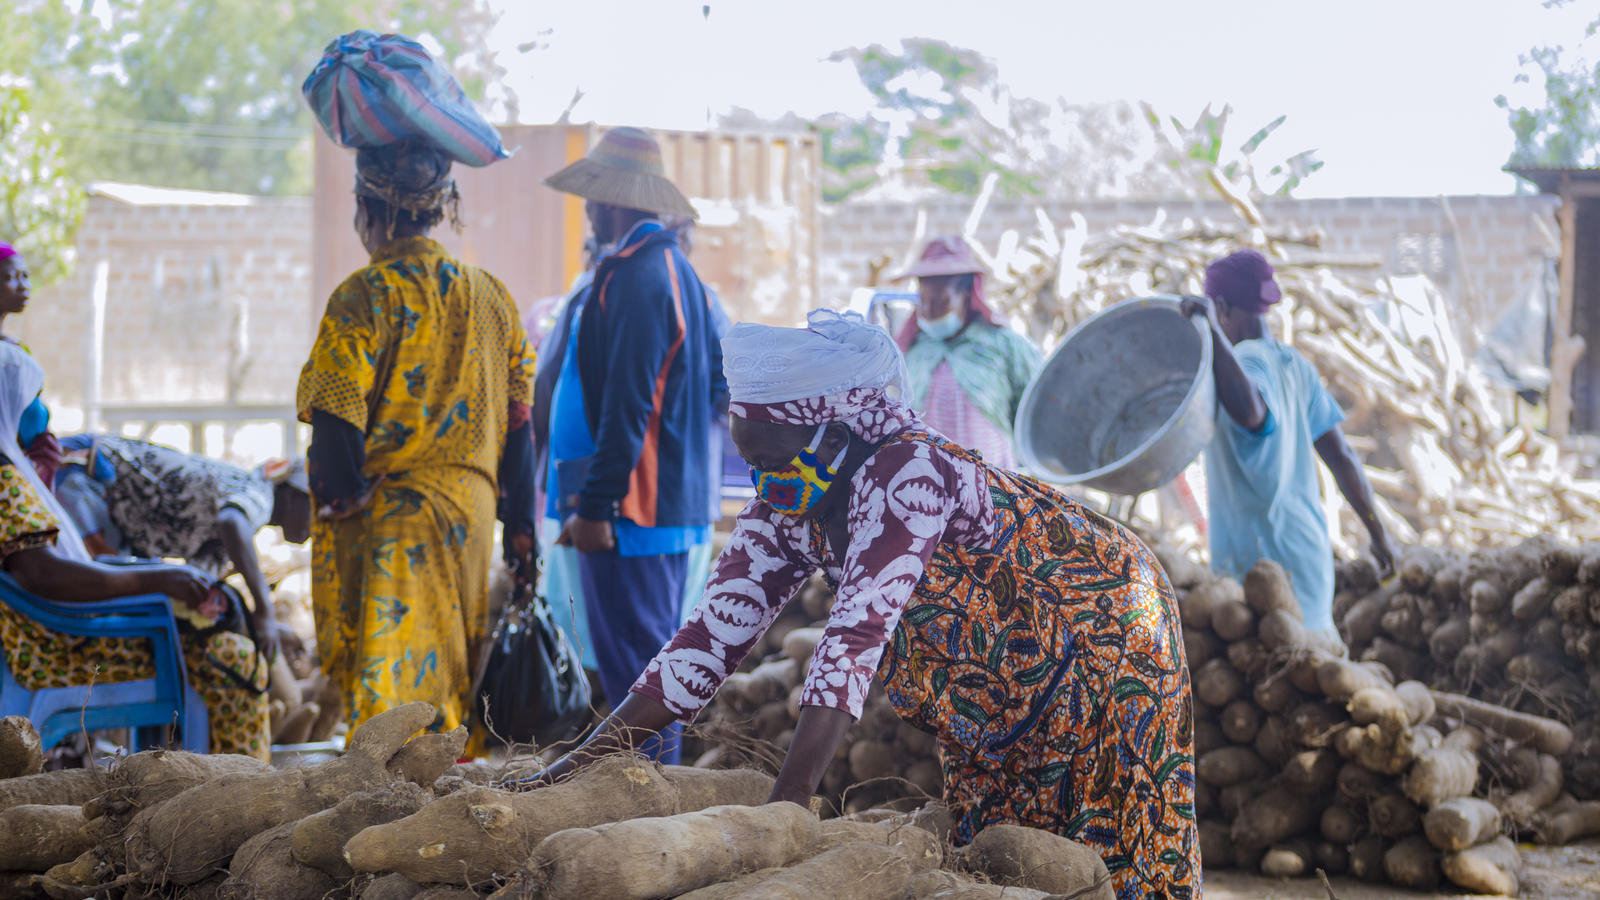 Women stack yams and carry produce at Bimbila Market in the Nanumba North Municipal Assembly, Ghana.